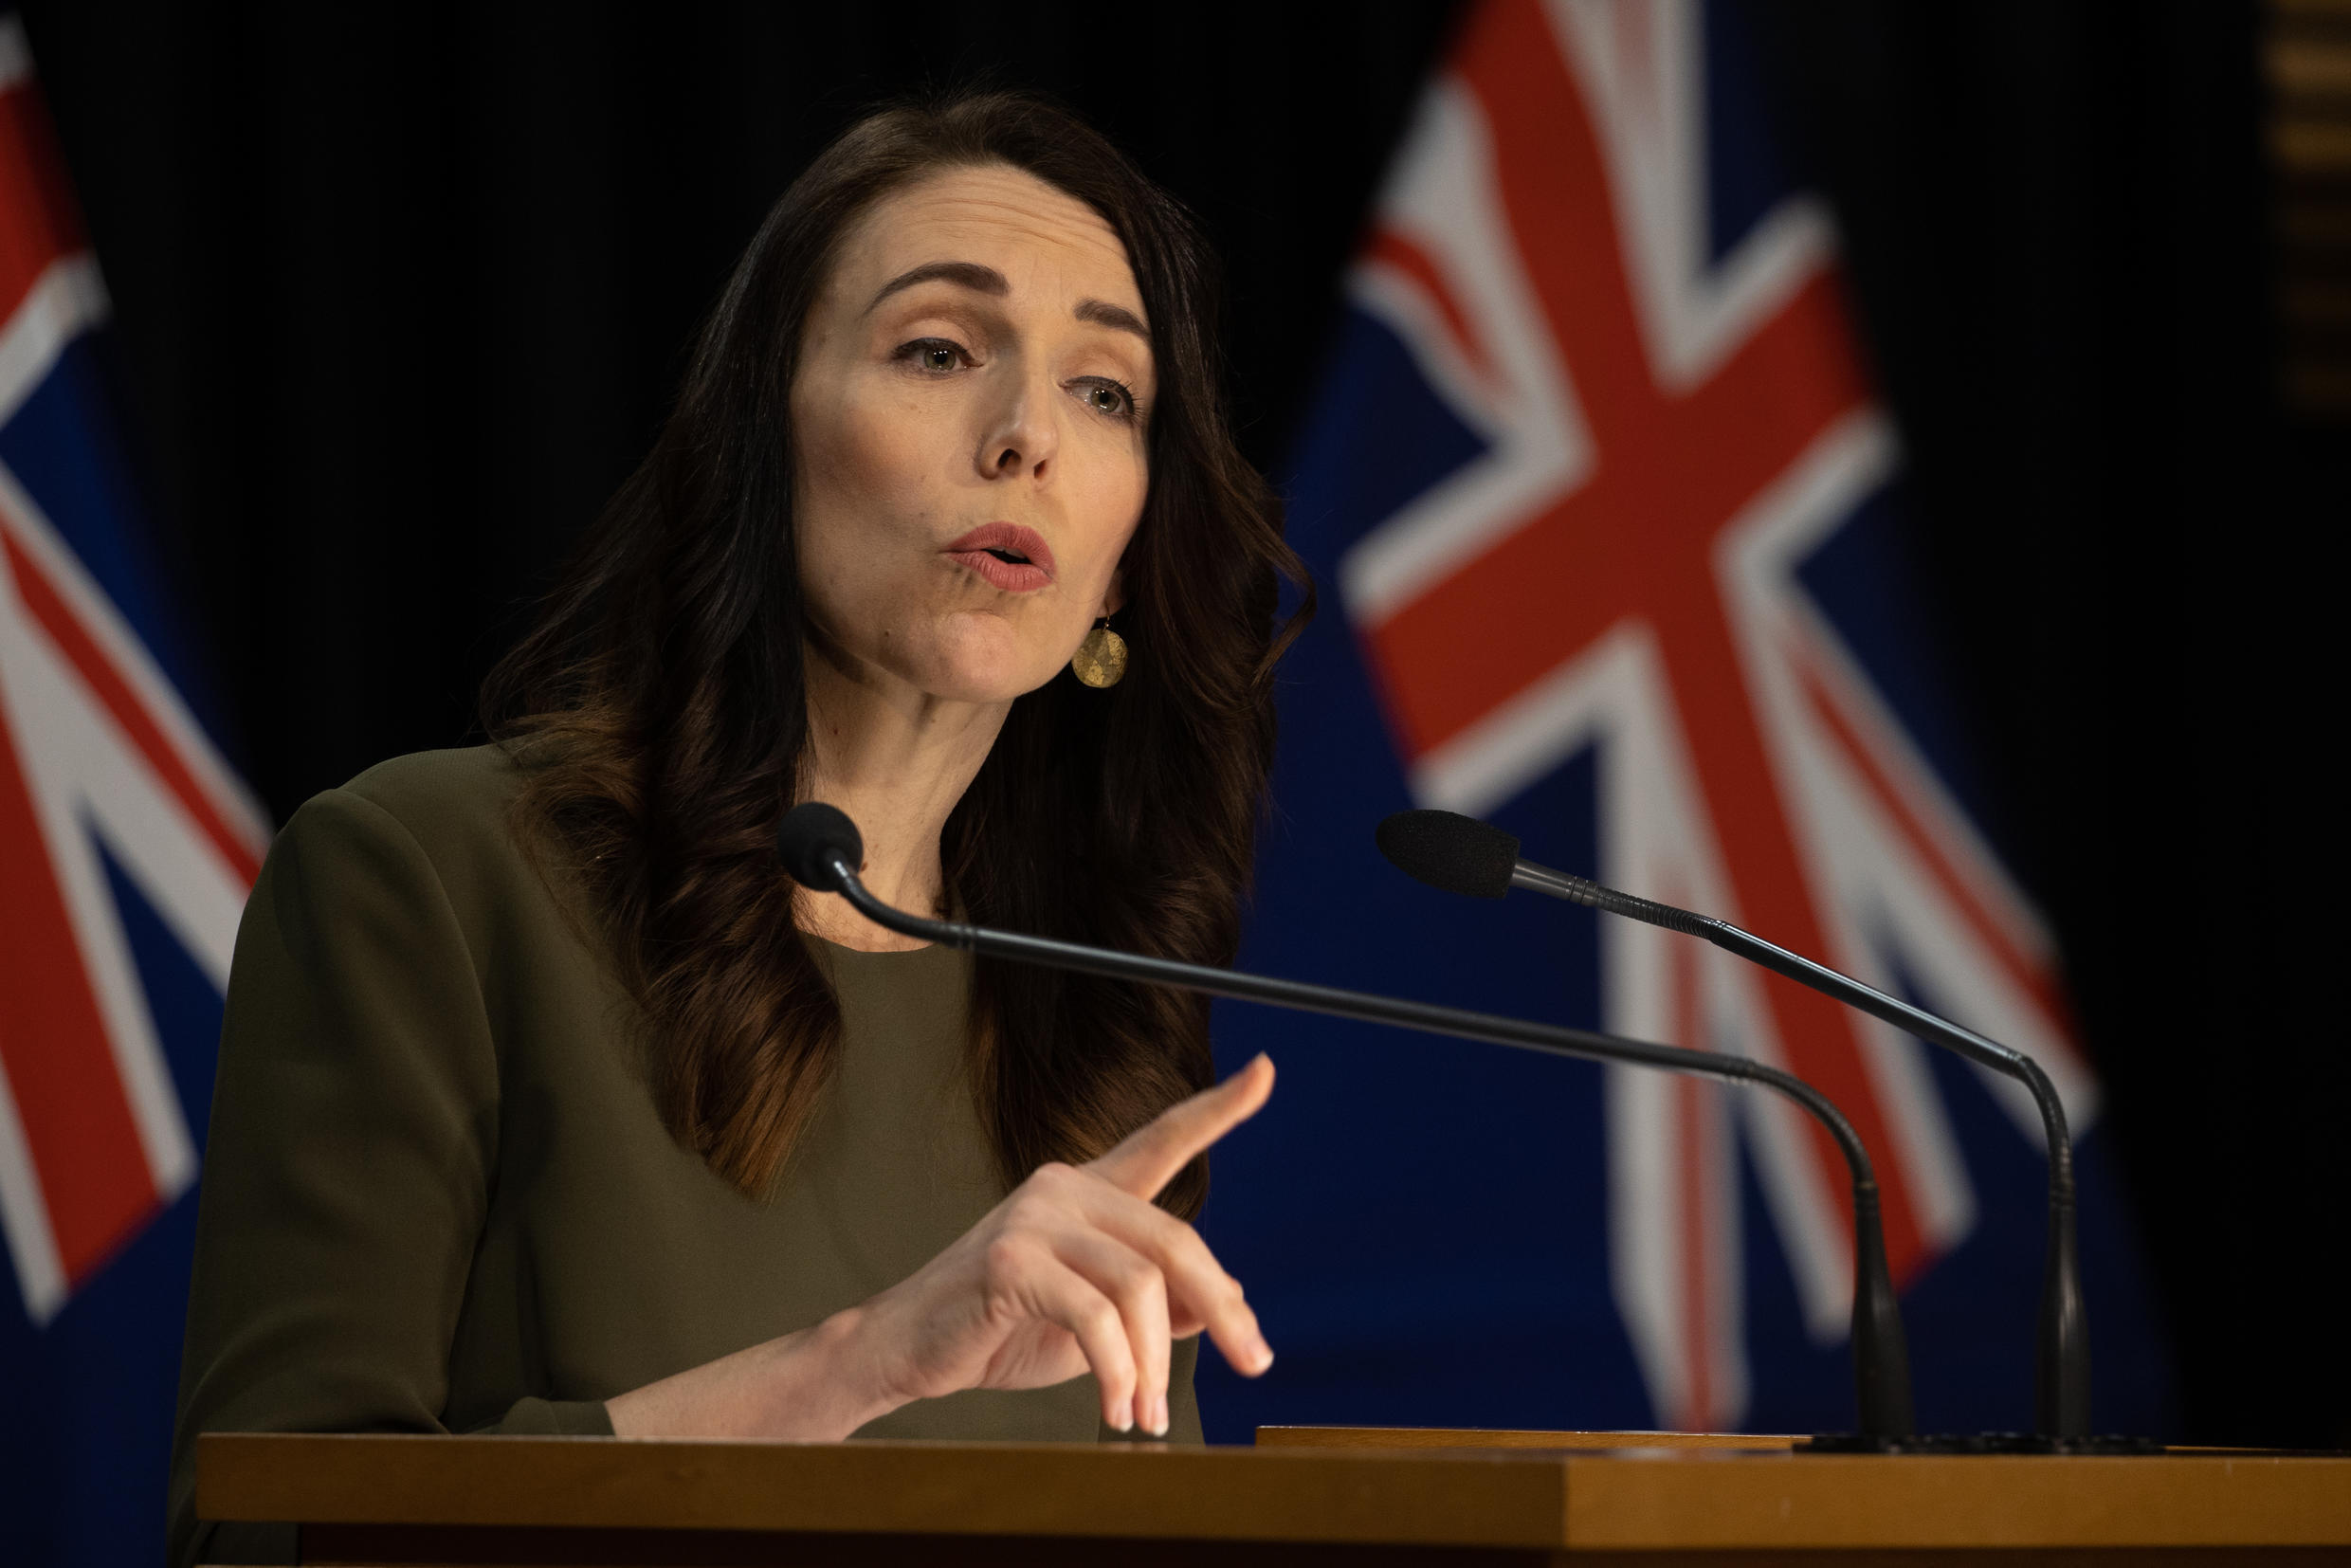 Confident: New Zealand should be able to host Bledisloe Cup, says Prime Minister Jacinda Ardern